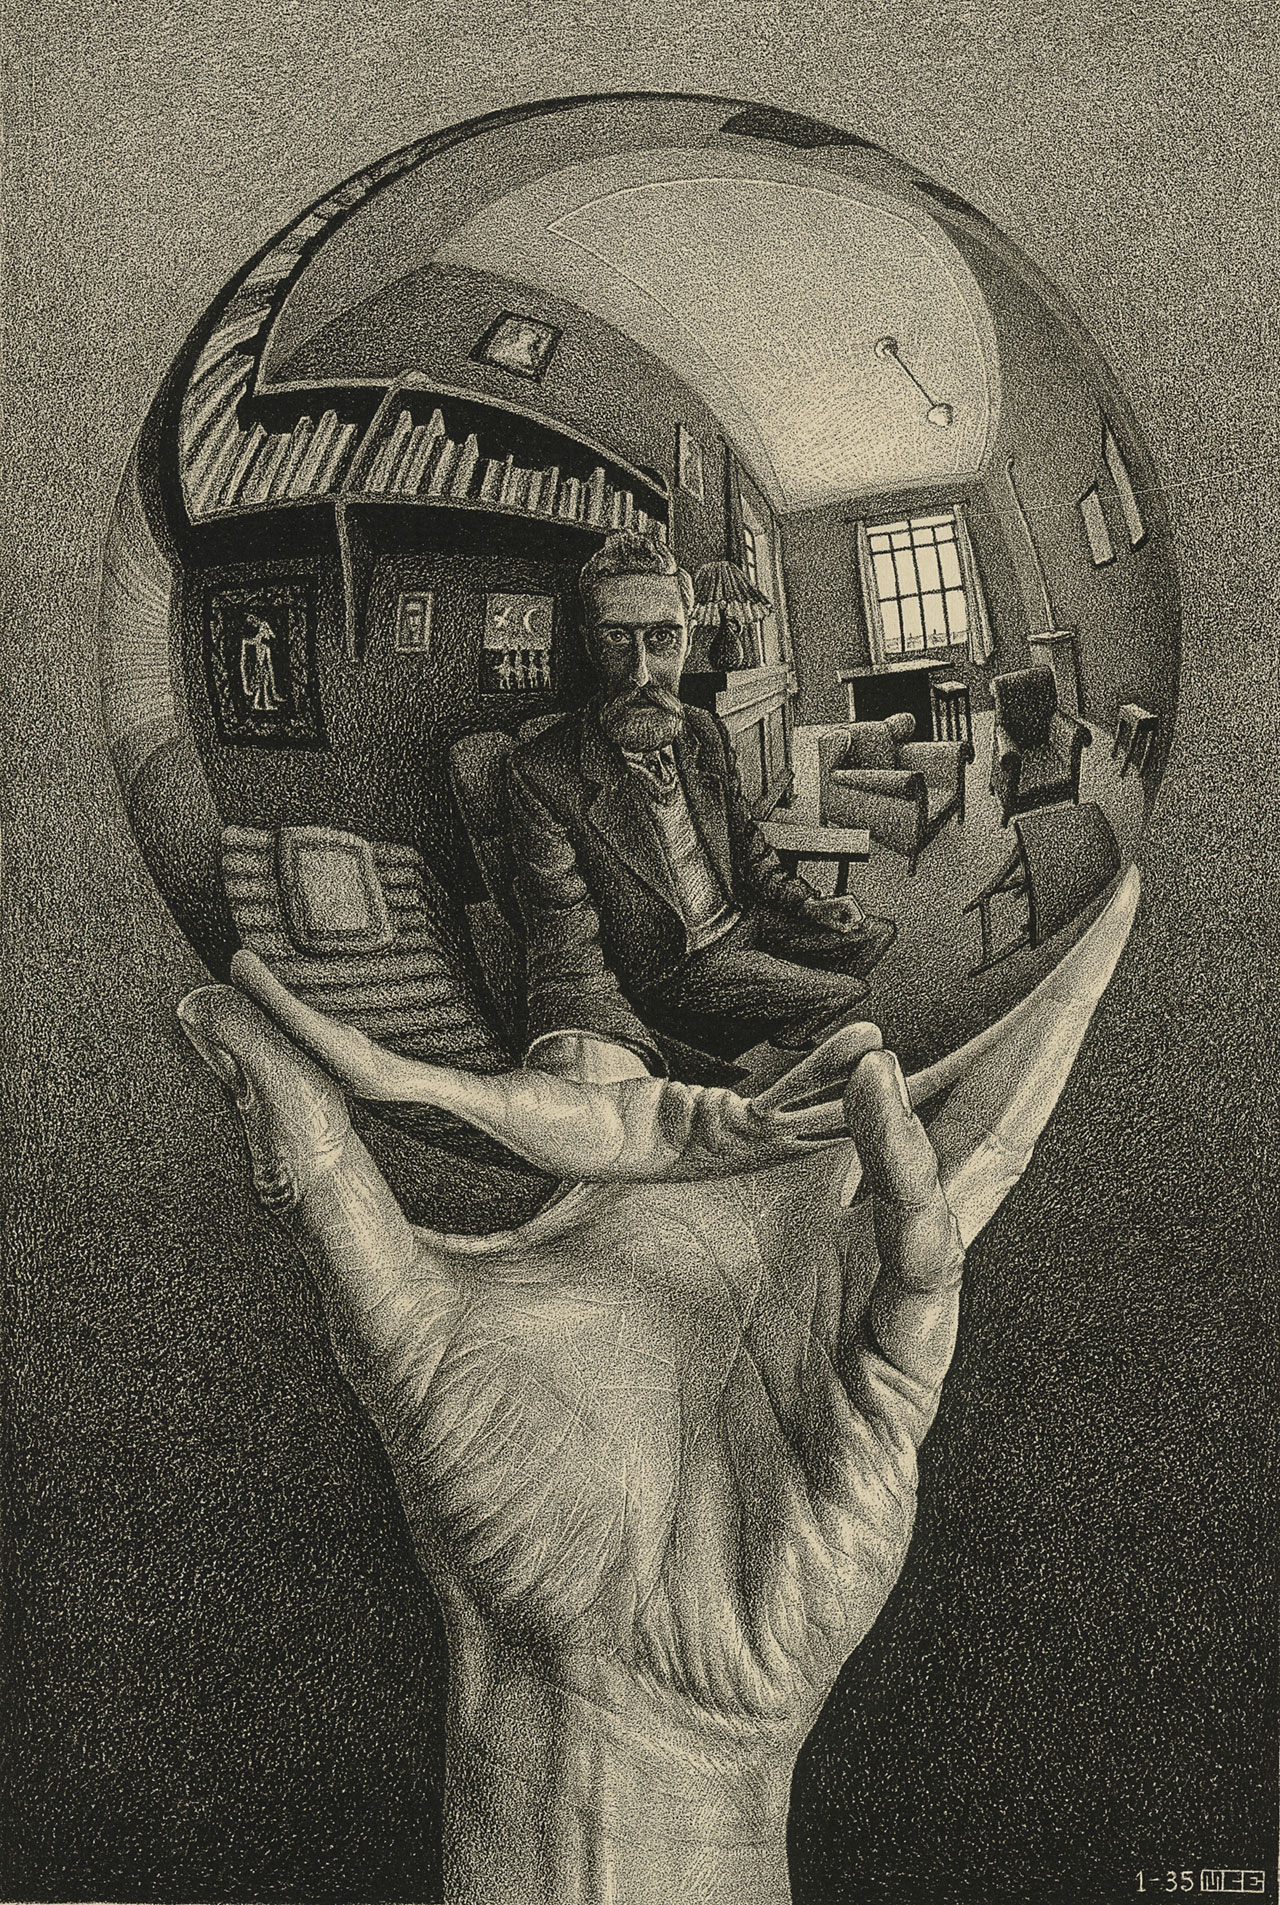 M. C. Escher, Hand with reflecting sphere (Self-portrait in spherical mirror), January 1935, lithograph.Escher Collection, Gemeentemuseum Den Haag, The Hague, the Netherlands © The M. C. Escher Company, the Netherlands. All rights reserved.